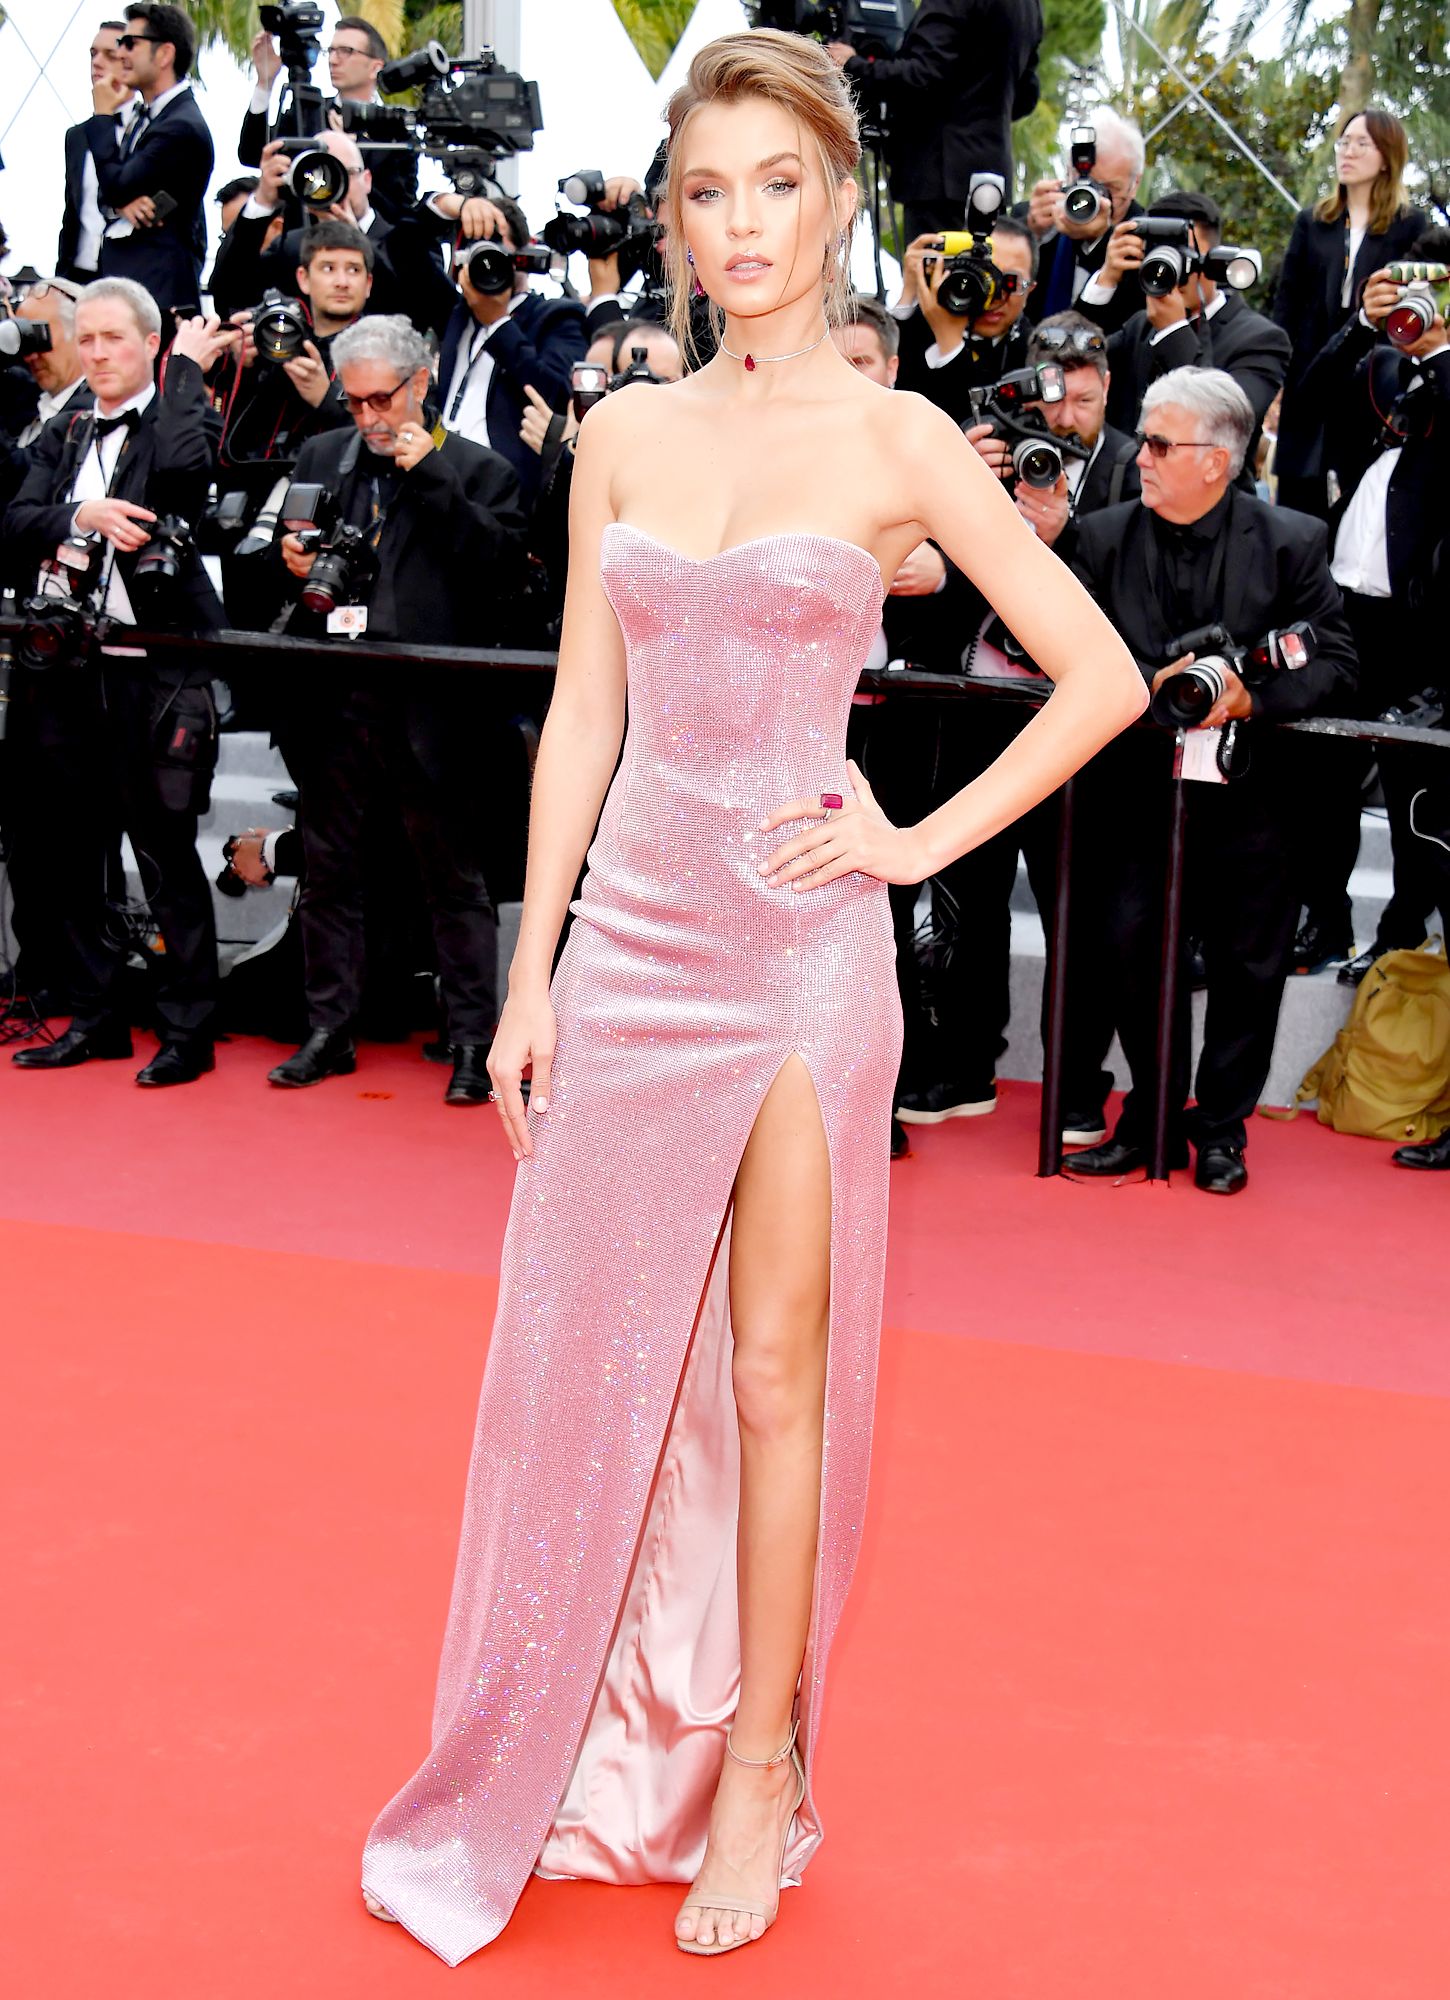 Josephine-Skriver - The model was pretty in pink at the Once Upon a Time in Hollywood screening on Tuesday, May 21, in her Philosophy di Lorenzo Serafini strapless gown.